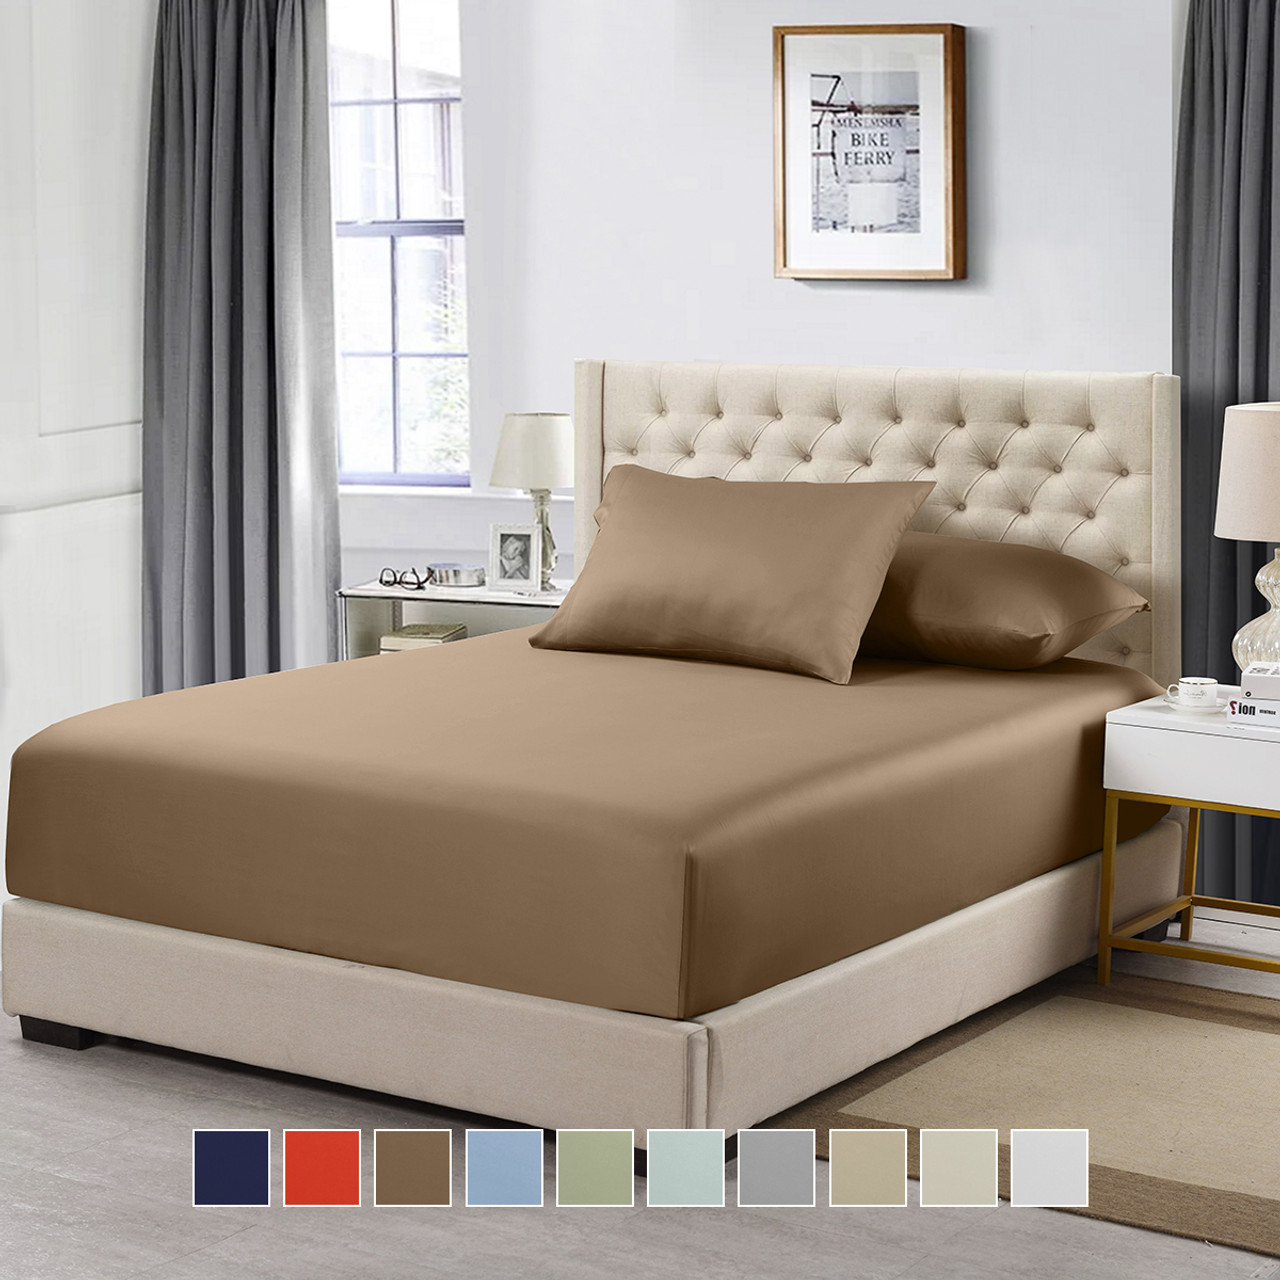 100 Cotton Fitted Solid Sheet 600 Thread Count Queen Size